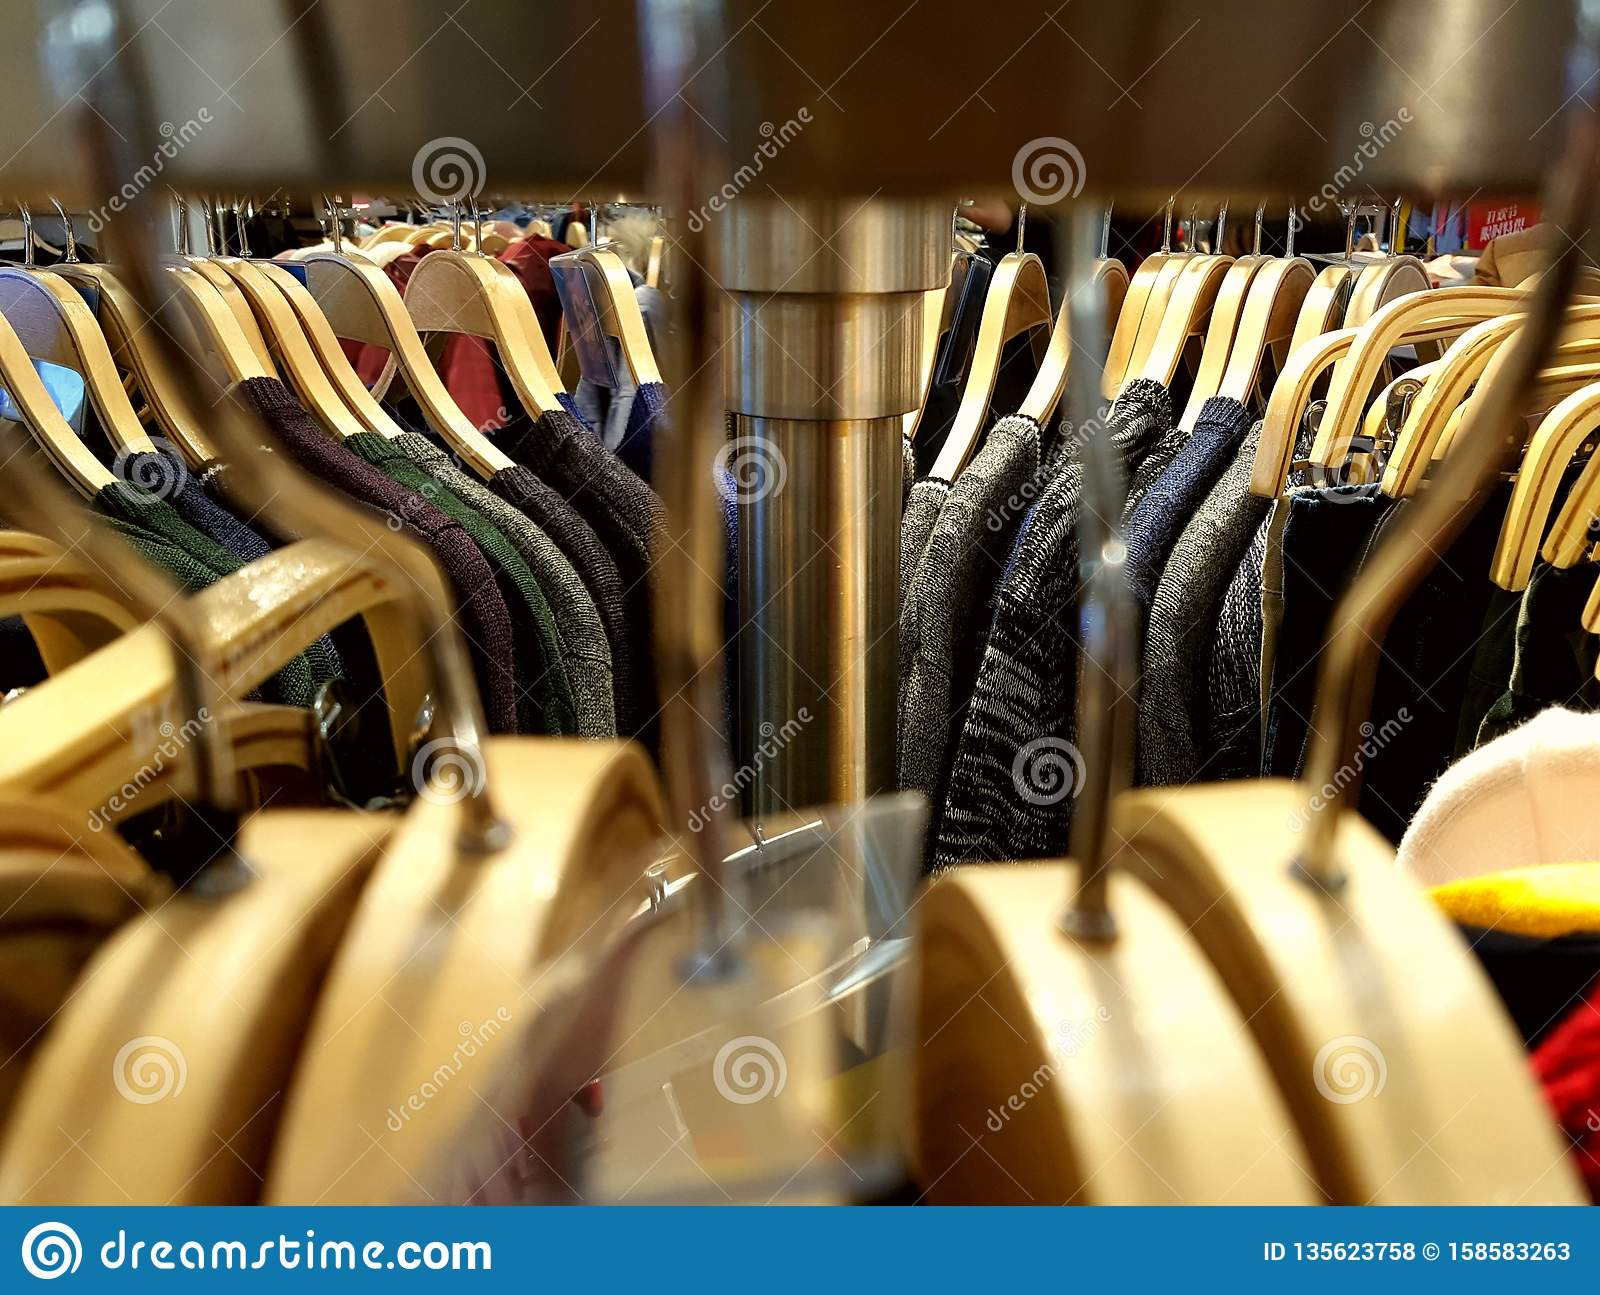 Exhibition Stand Clothes : Clothes hangers arranged on the exhibition stand stock photo image